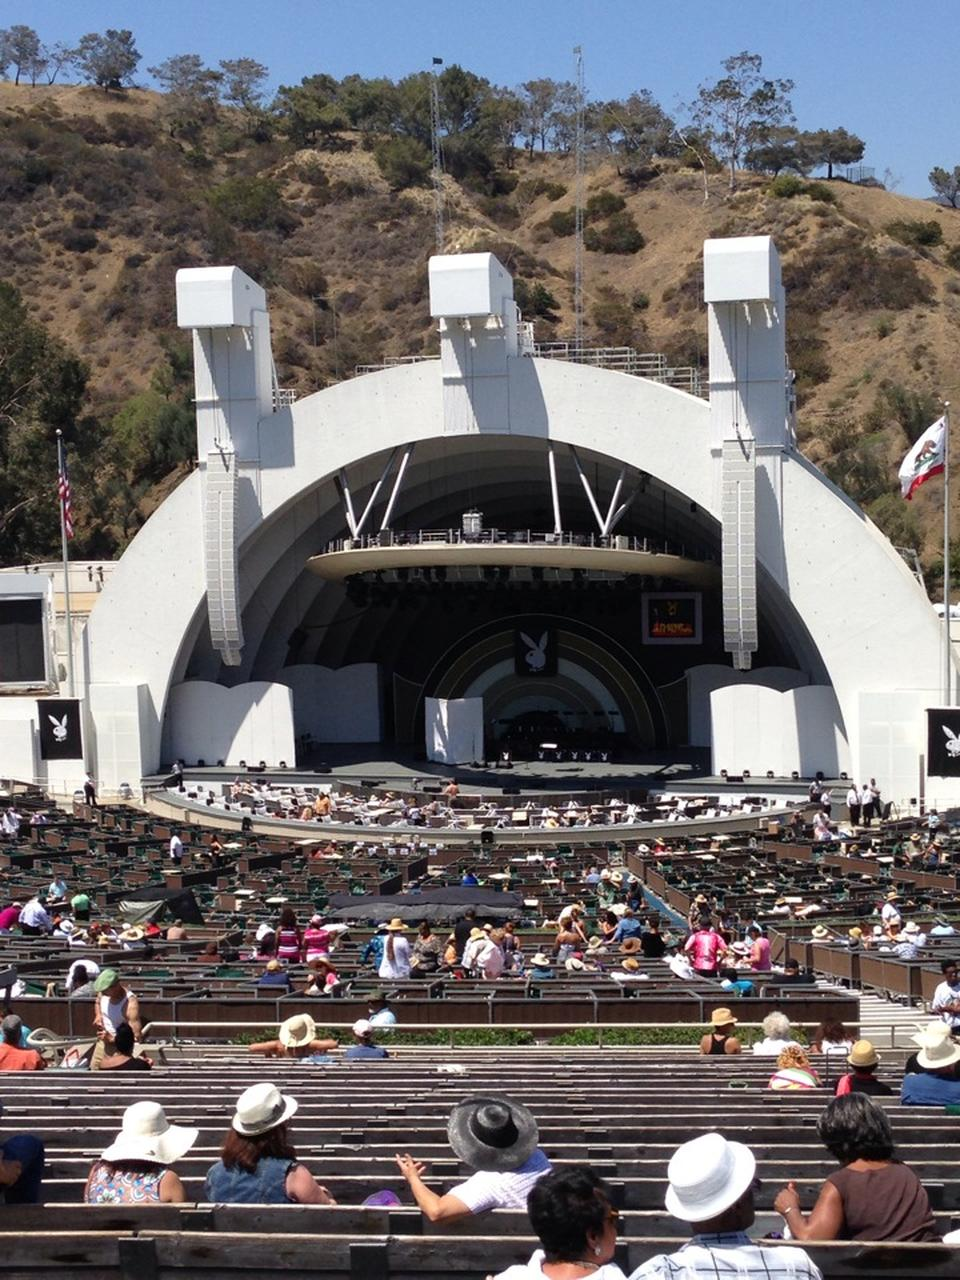 Hollywood Bowl Concerts >> Hollywood Bowl Section G2 - RateYourSeats.com